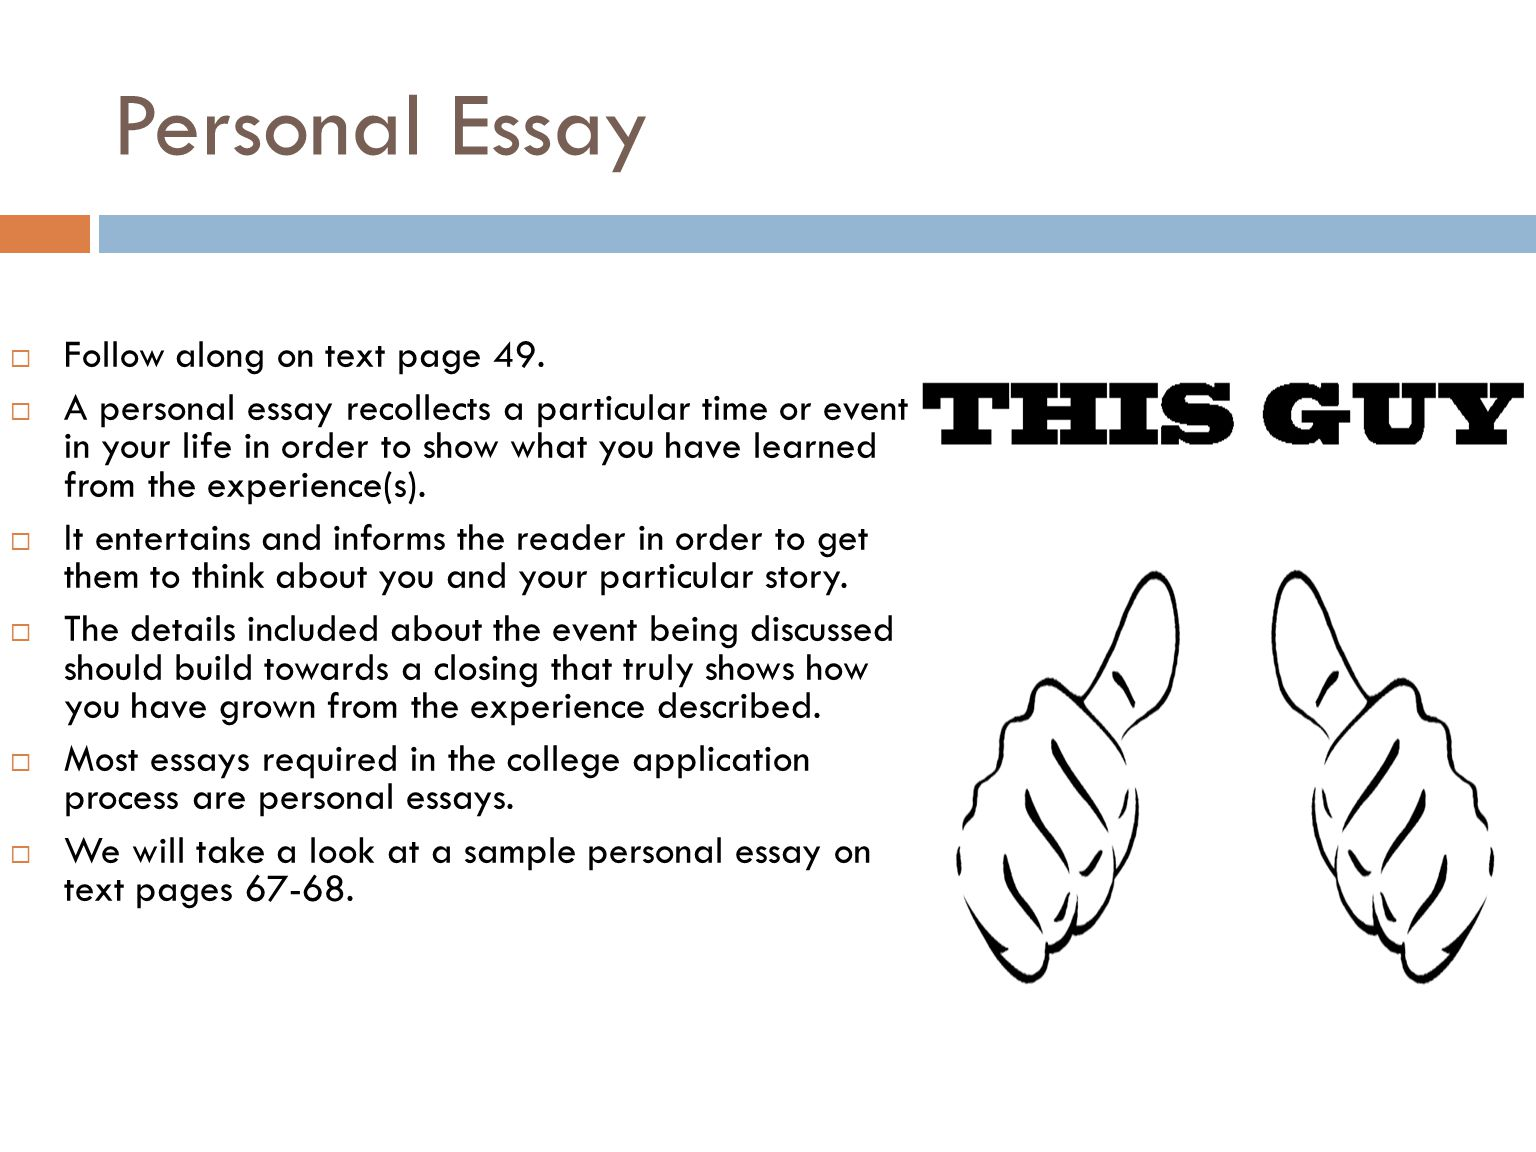 essay life story Hello, i attend ashford online college and i was hoping that someone would help me with my essay it needs to be in apa formatting and i also need help with citing sources in apa format as well.